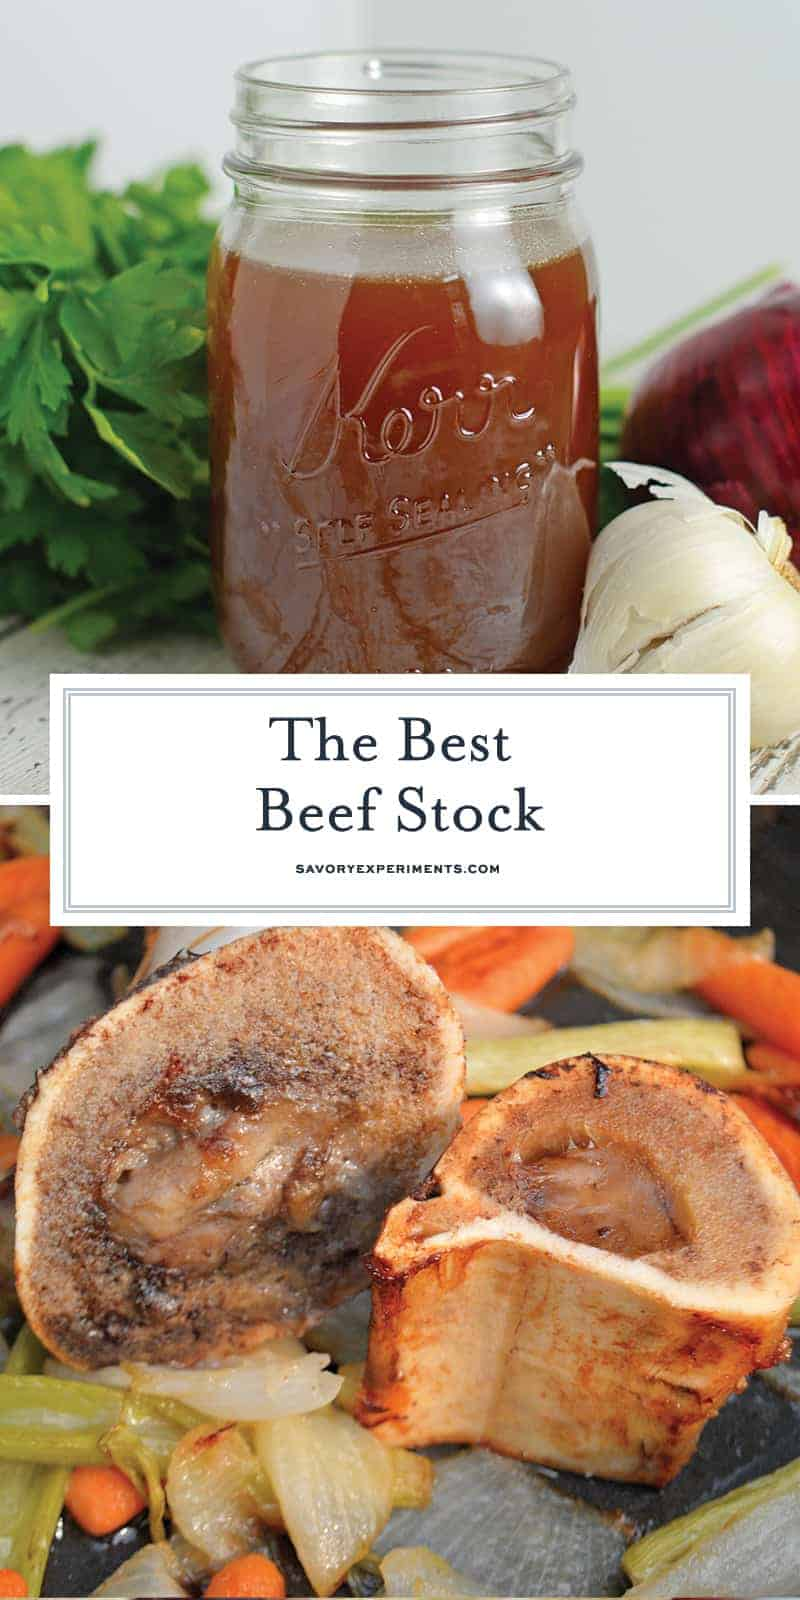 The Best Beef Stock recipe made with herbs and vegetables. Freezer friendly and full of flavor, you'll never buy store bought again!#beefbroth #beefstock #howtomakestock www.savoryexperiments.com